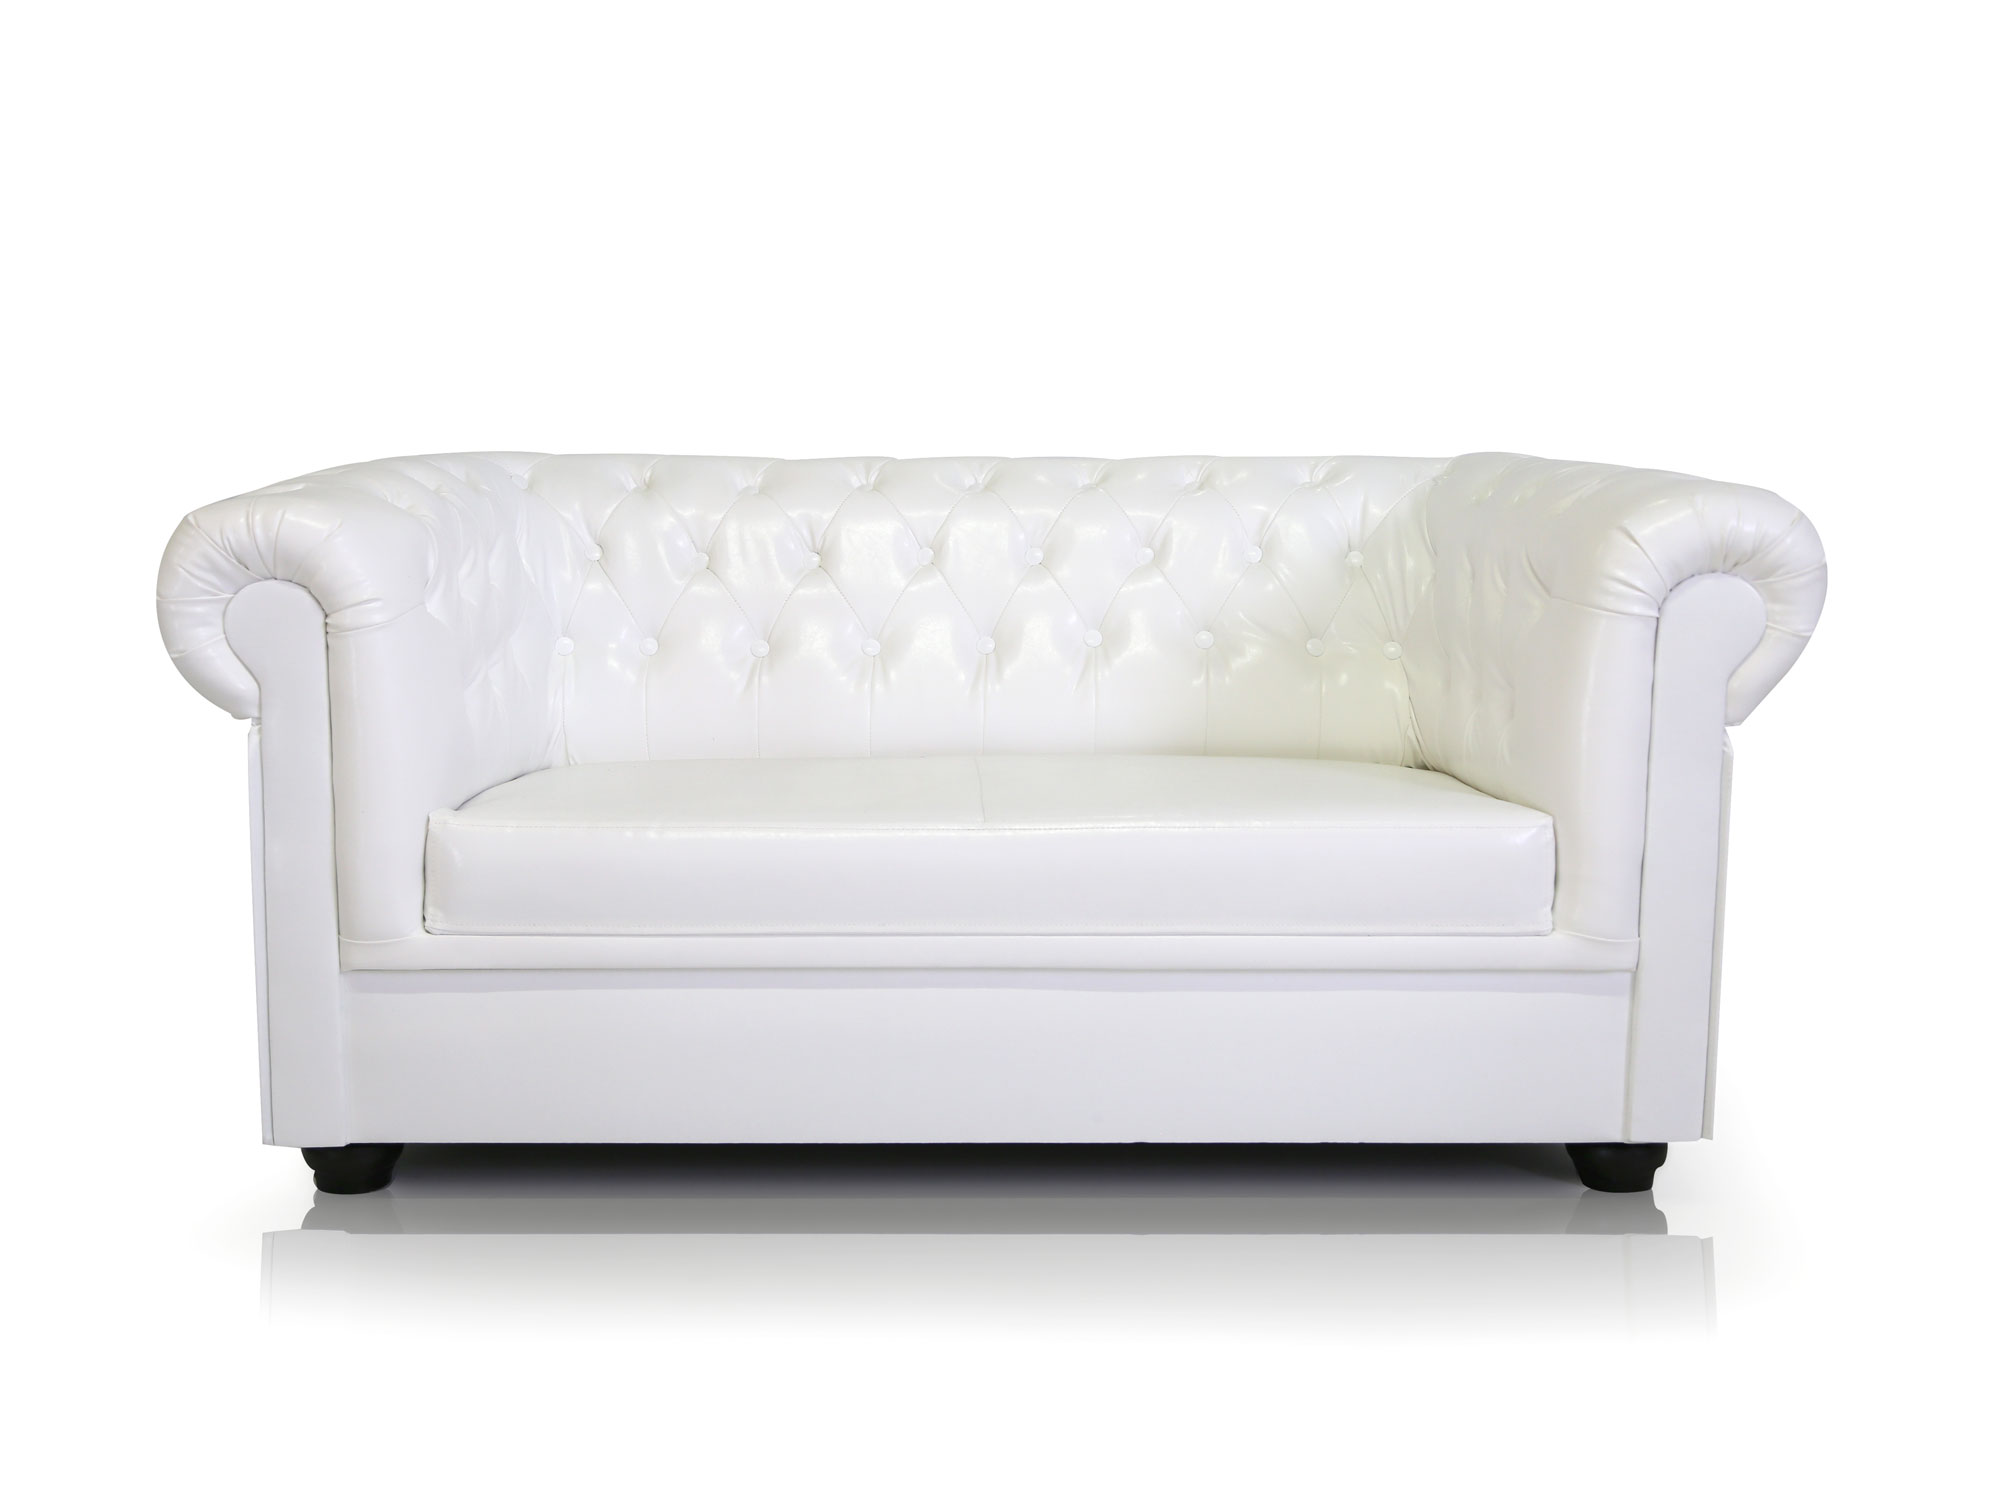 Chesterfield Ecksofa Weiss Chesterfield Sofa Weiss Chesterfield 3er Sofa Kunstleder